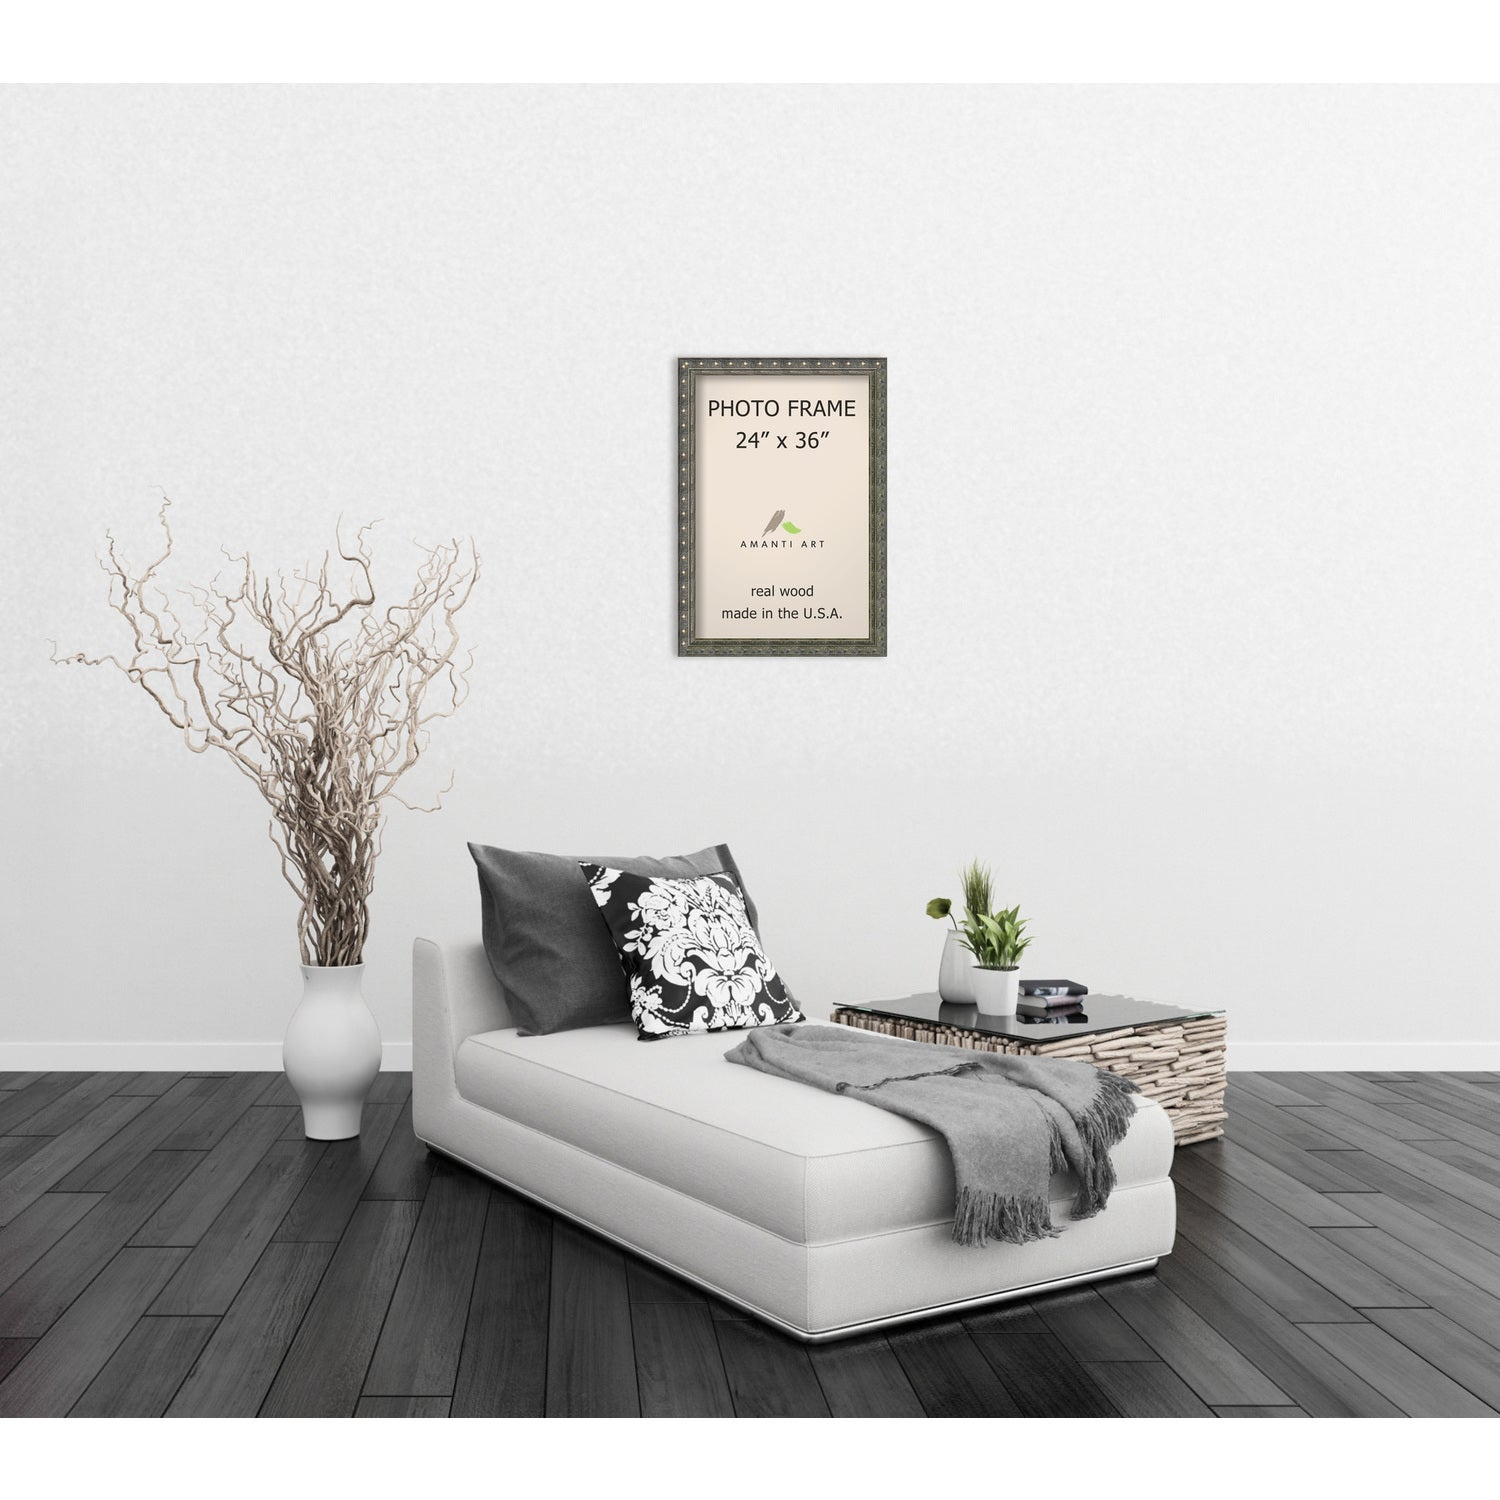 Barcelona pewter photo frame 28 x 40 inch free shipping today barcelona pewter photo frame 28 x 40 inch free shipping today overstock 17239731 jeuxipadfo Gallery